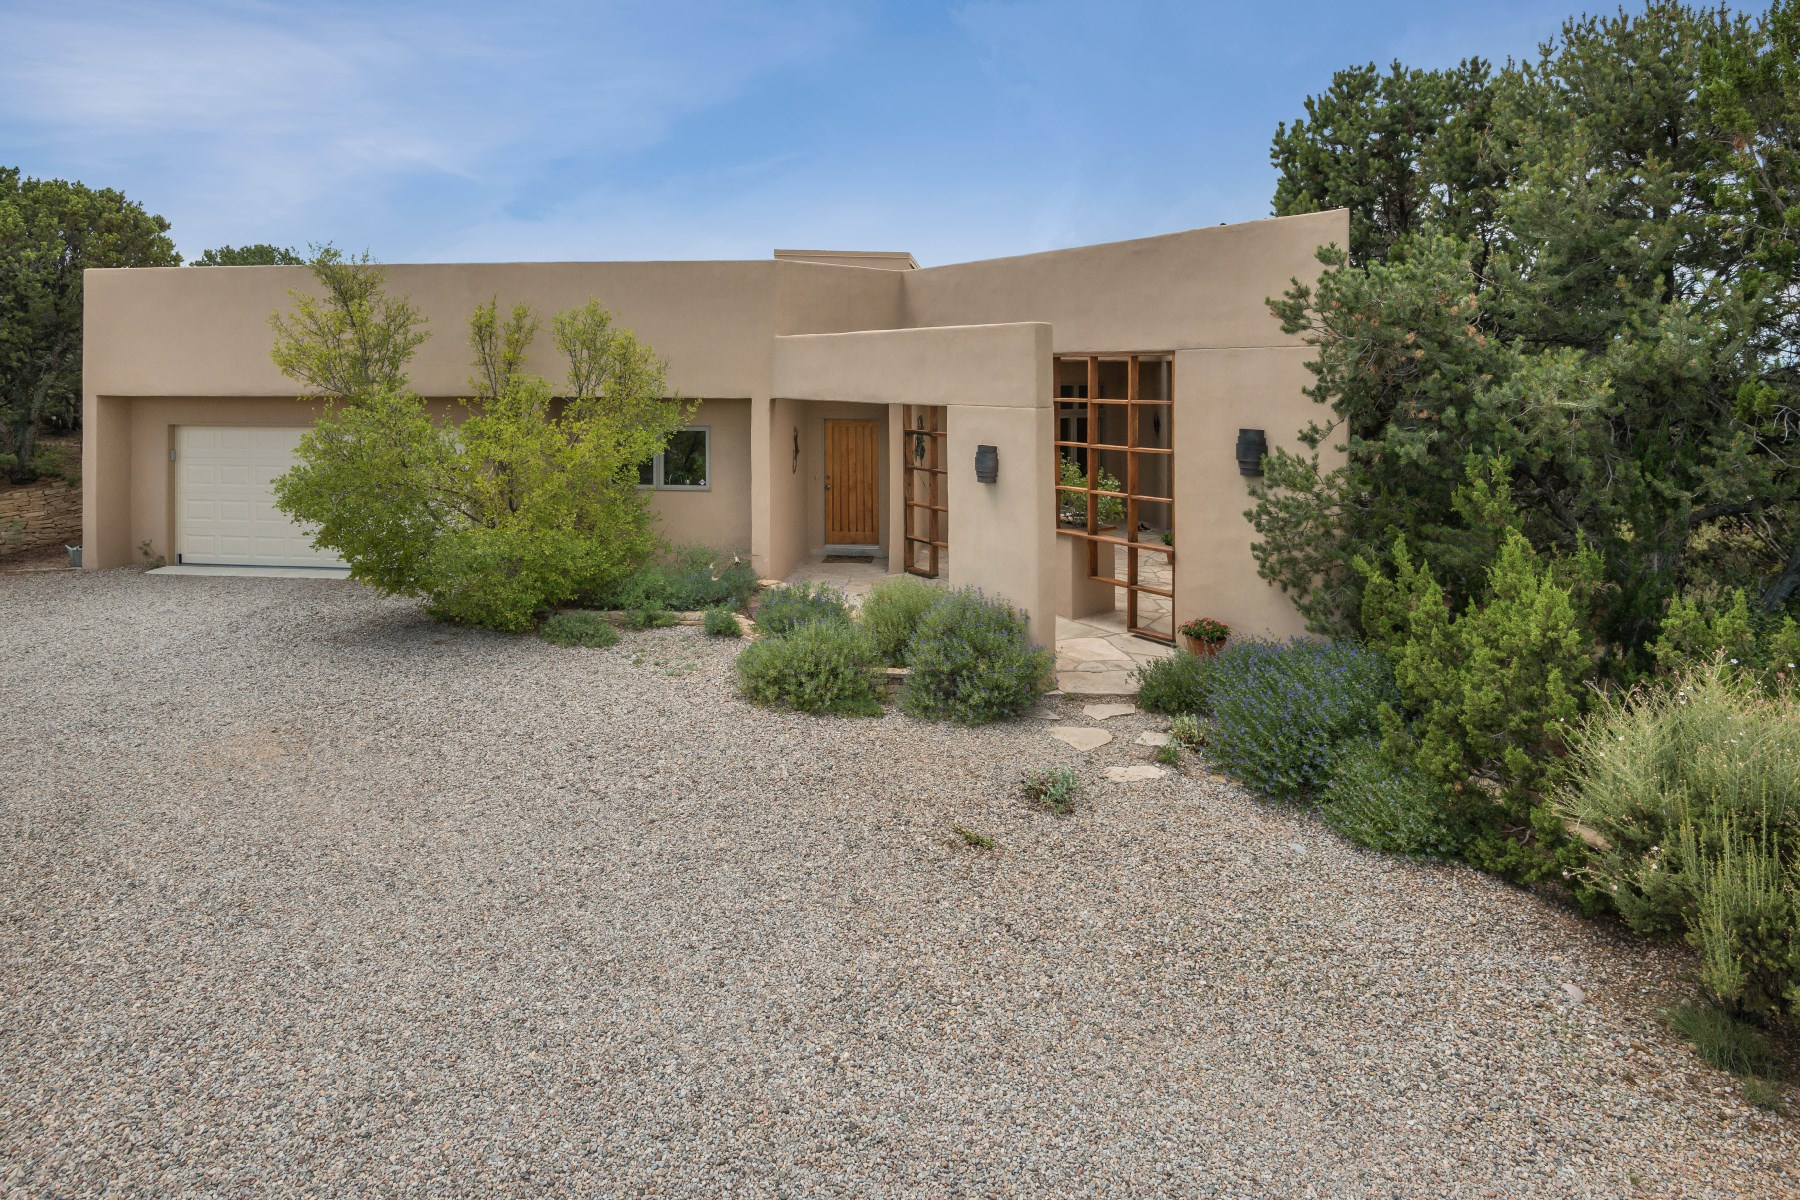 Single Family Home for Sale at 3116 Vista Sandia Northwest Of City Limits, Santa Fe, New Mexico, 87506 United States